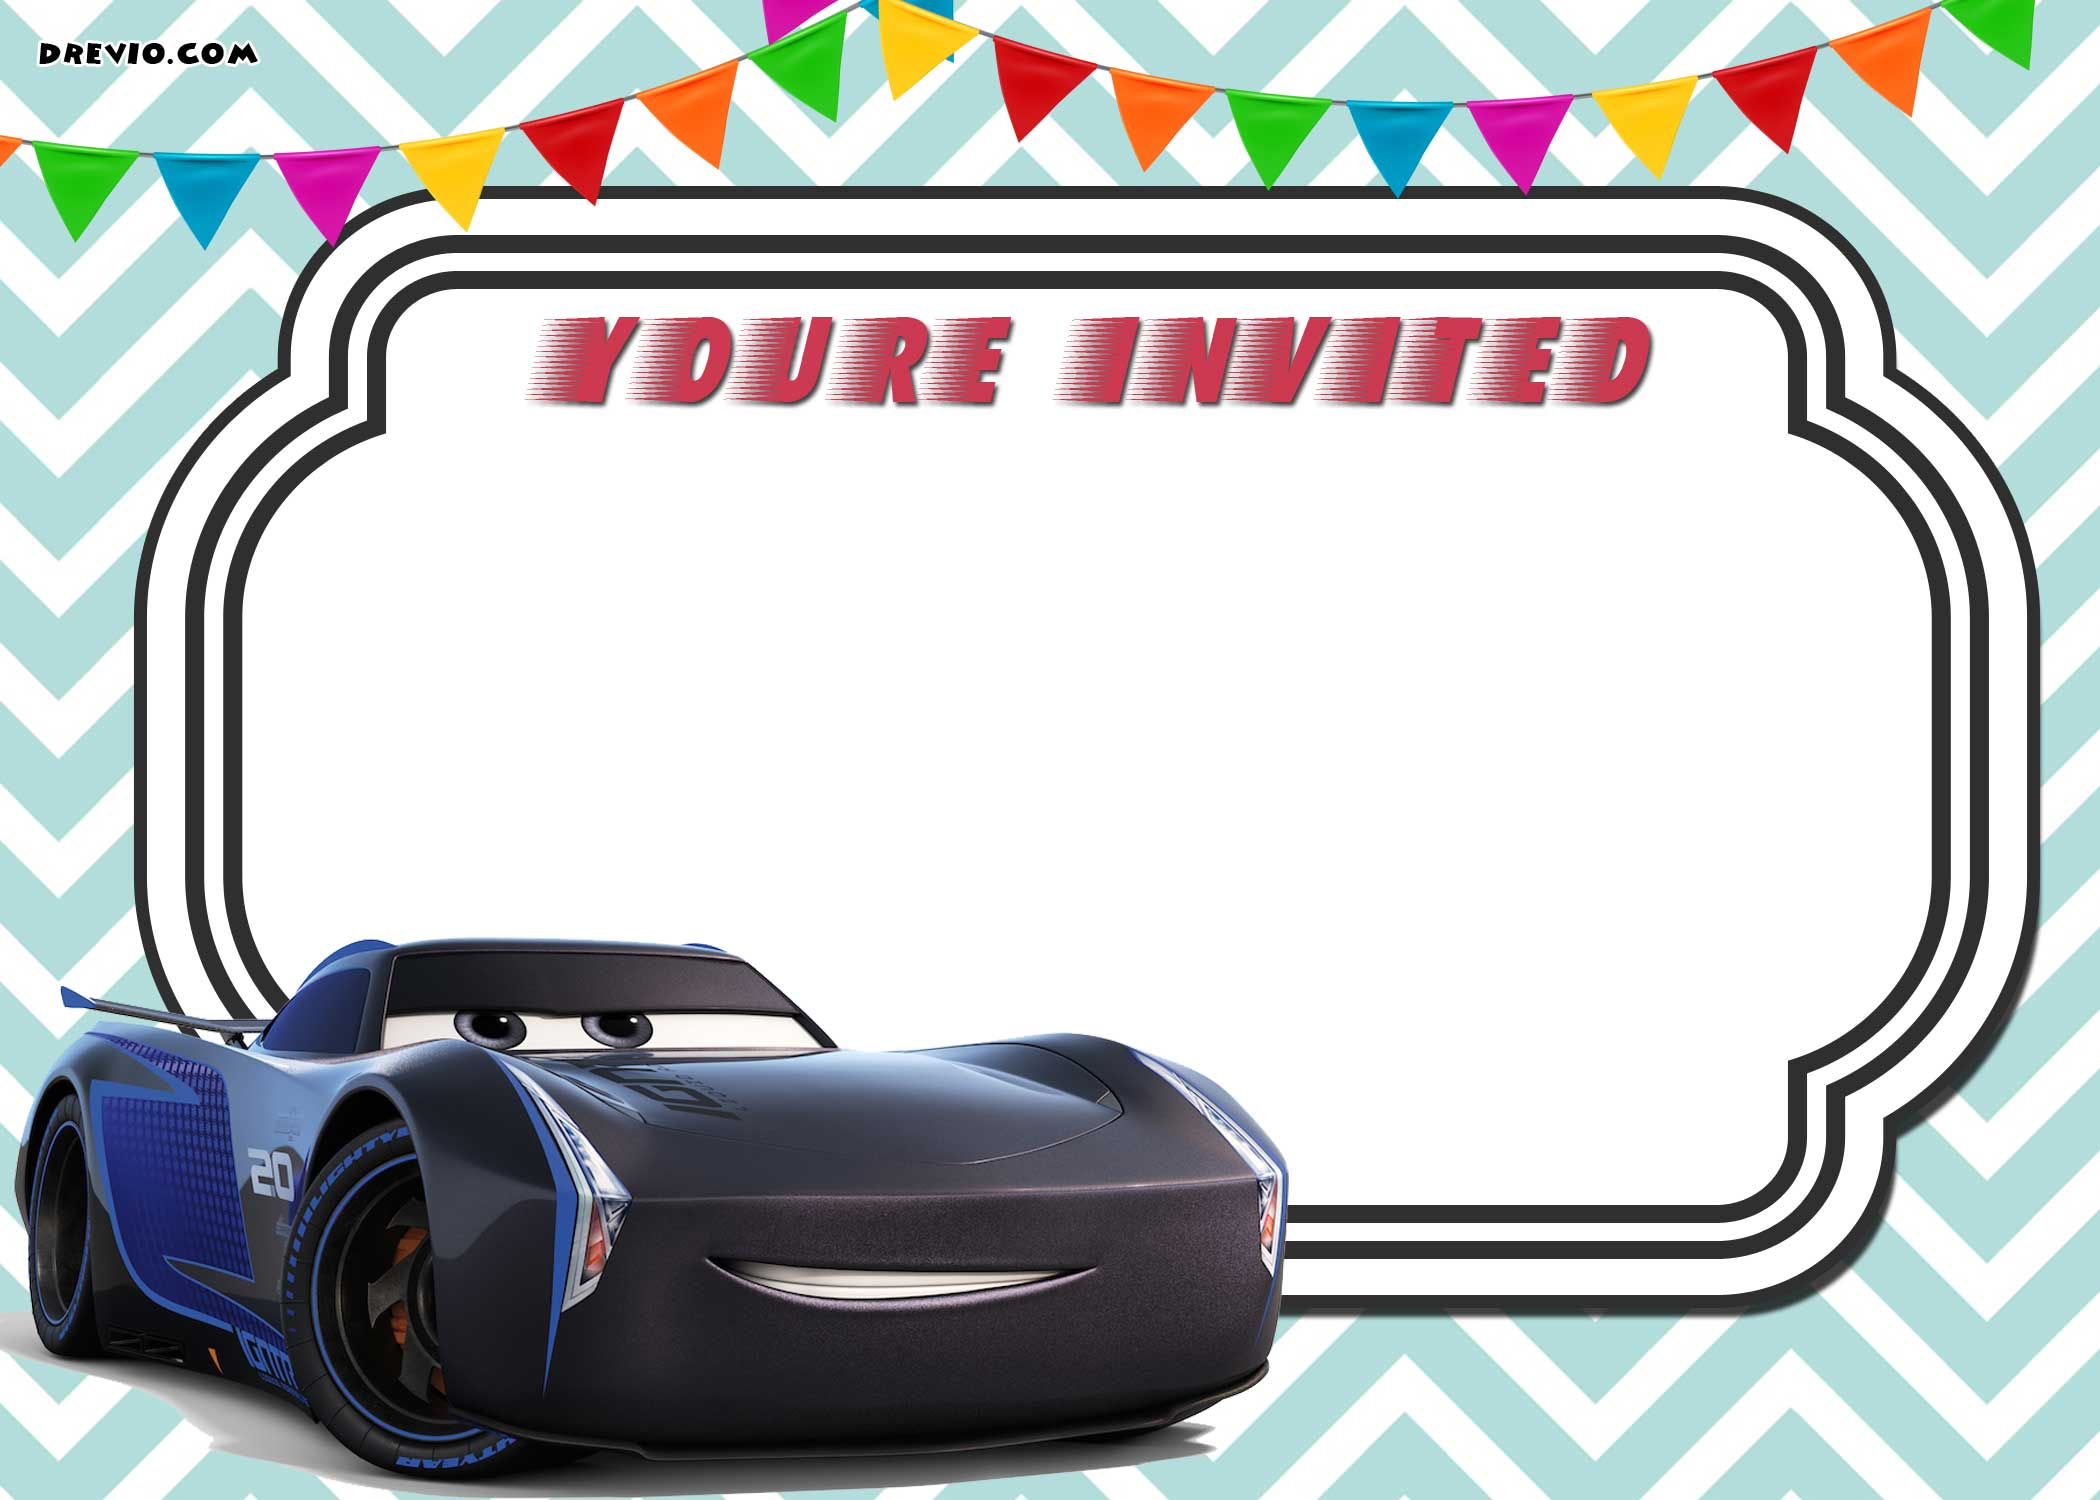 If Youre Able To Operate Photoshop Then You Can Add Some Cars Font And Fill It Easily Sized In HD Quality 1280x720 This Invitation Wont Be Blur When